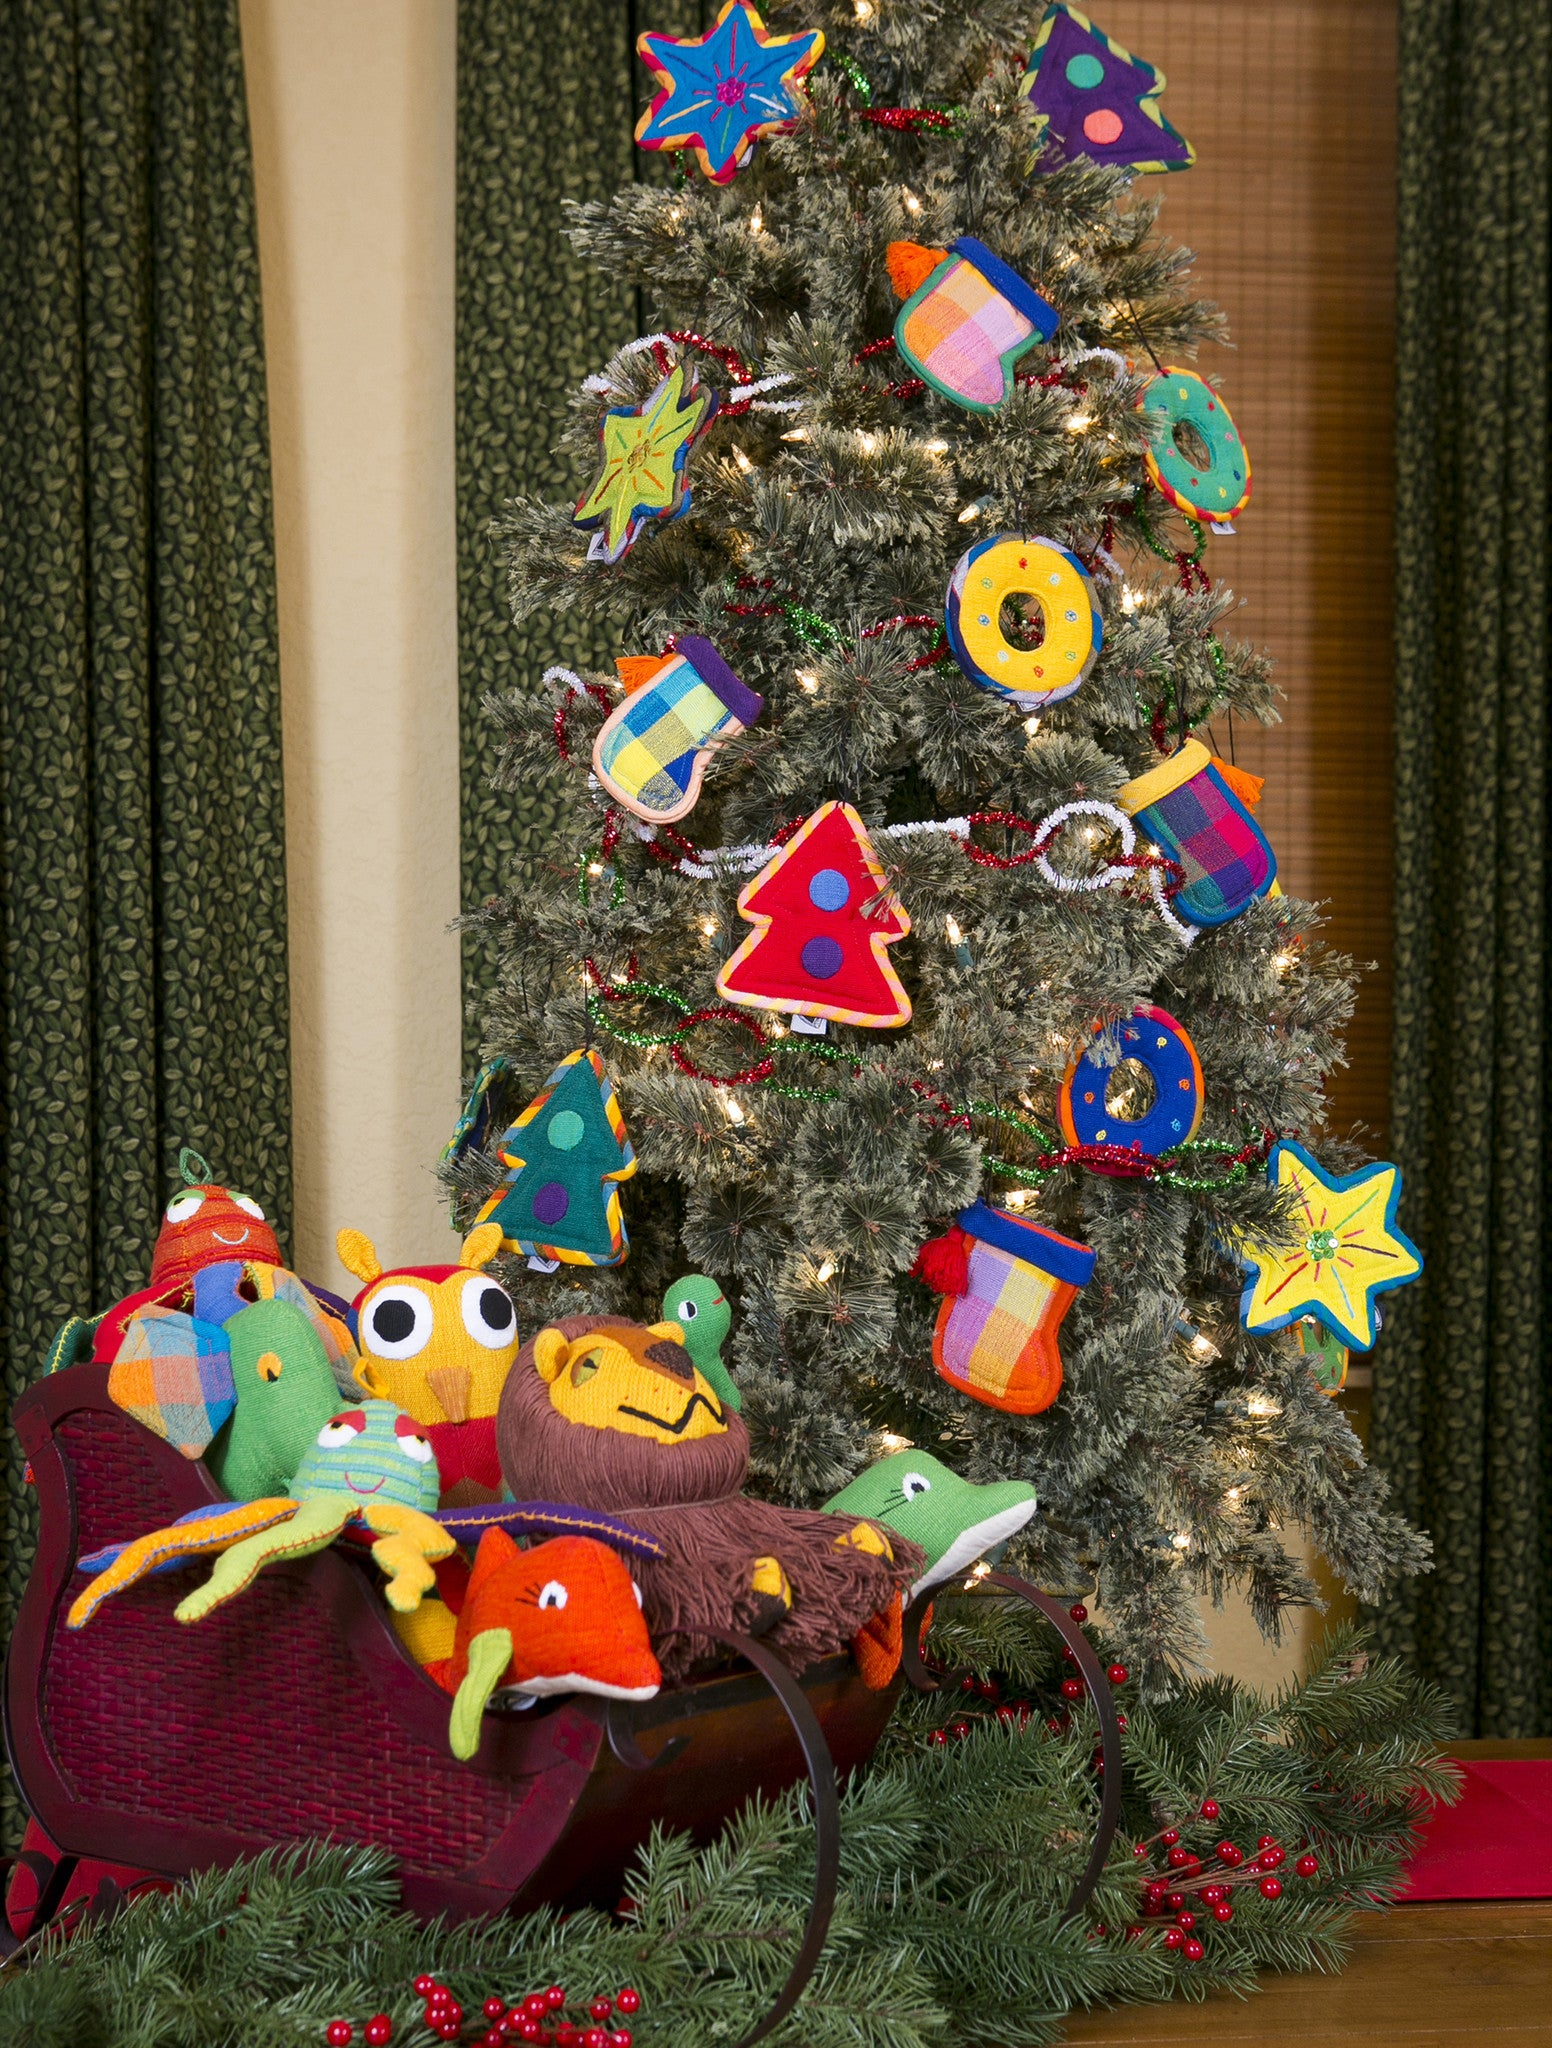 Add color to your Christmas tree with these fun ornaments!